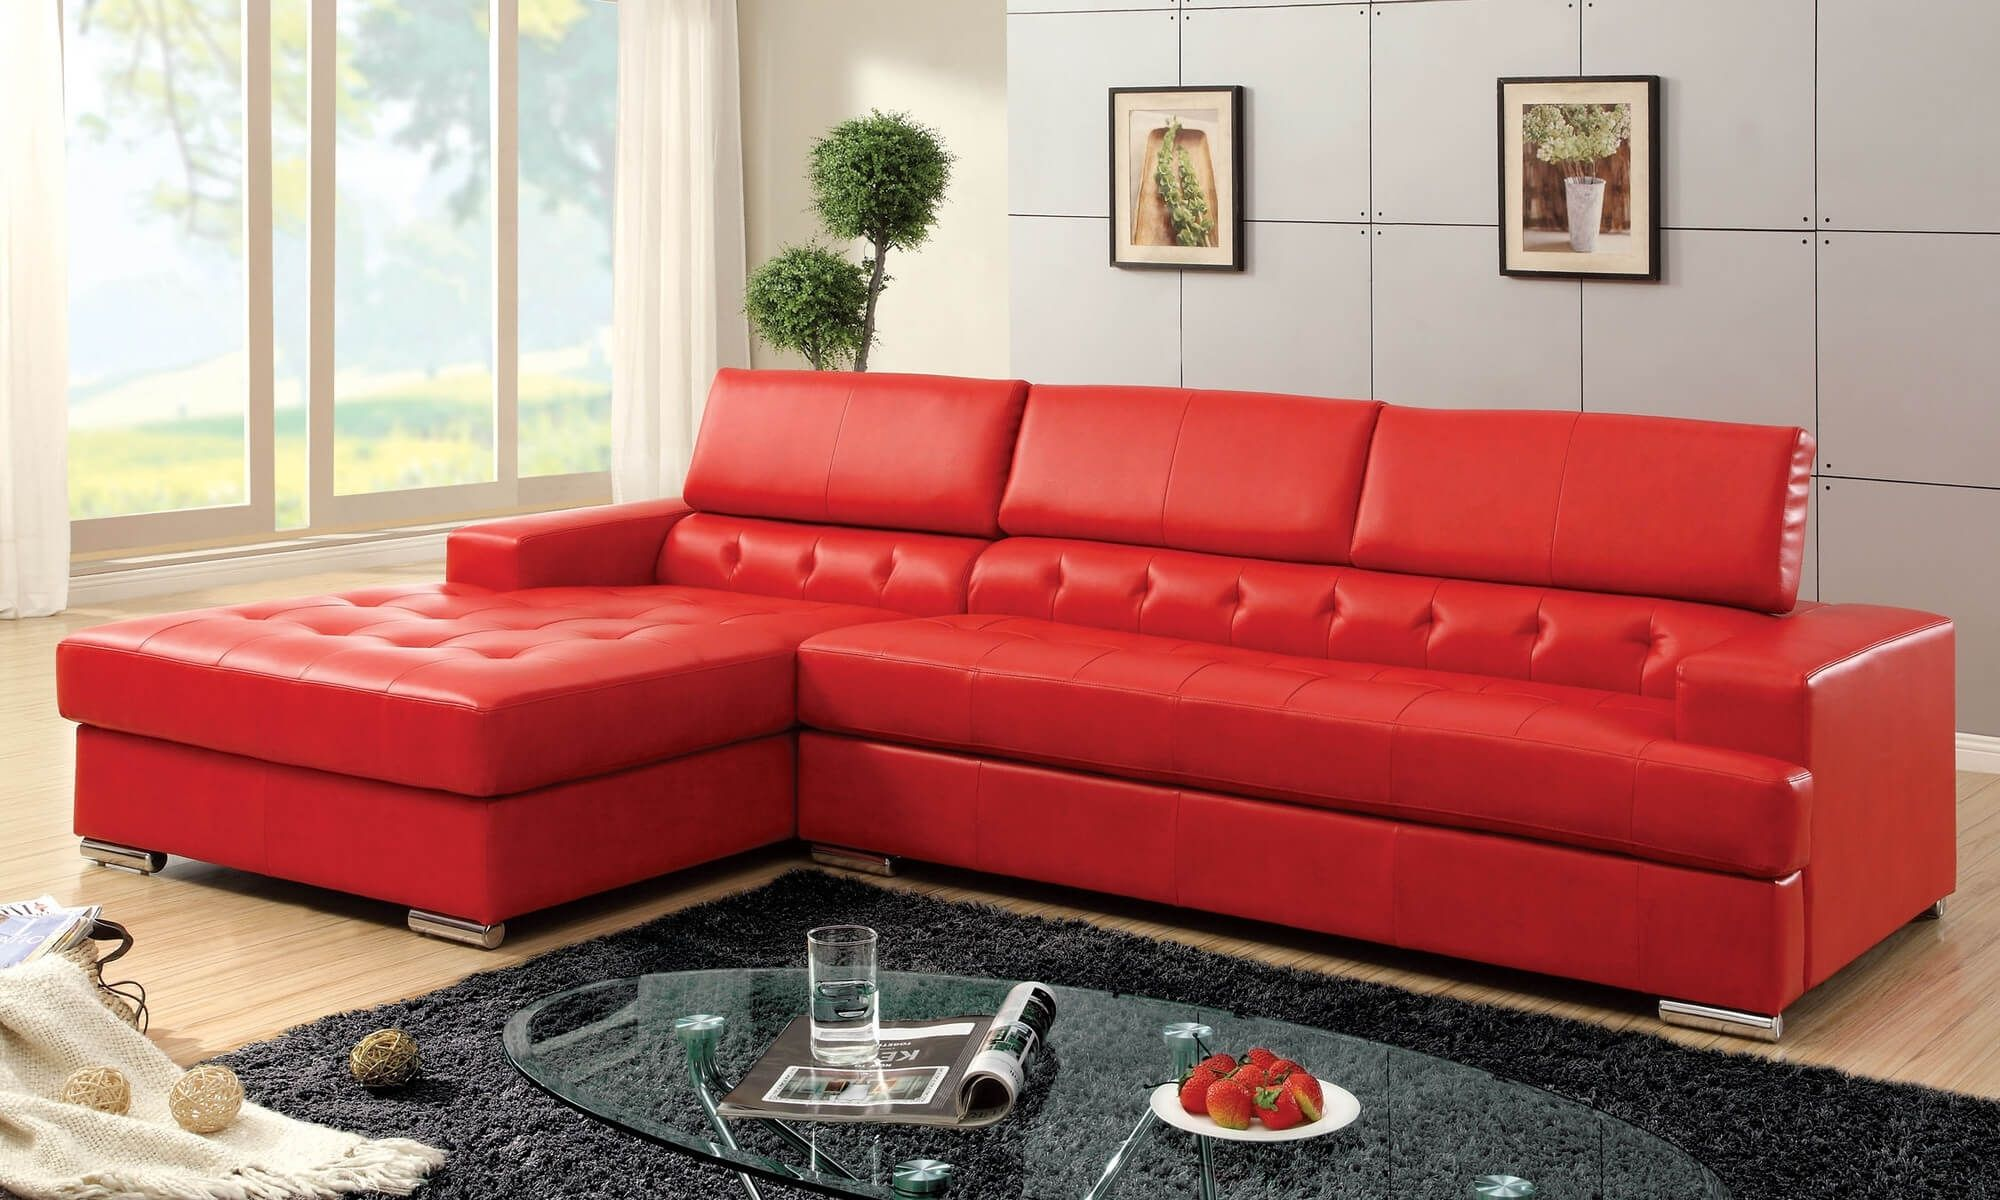 Incroyable Modern Red Leather Sectional Sofa